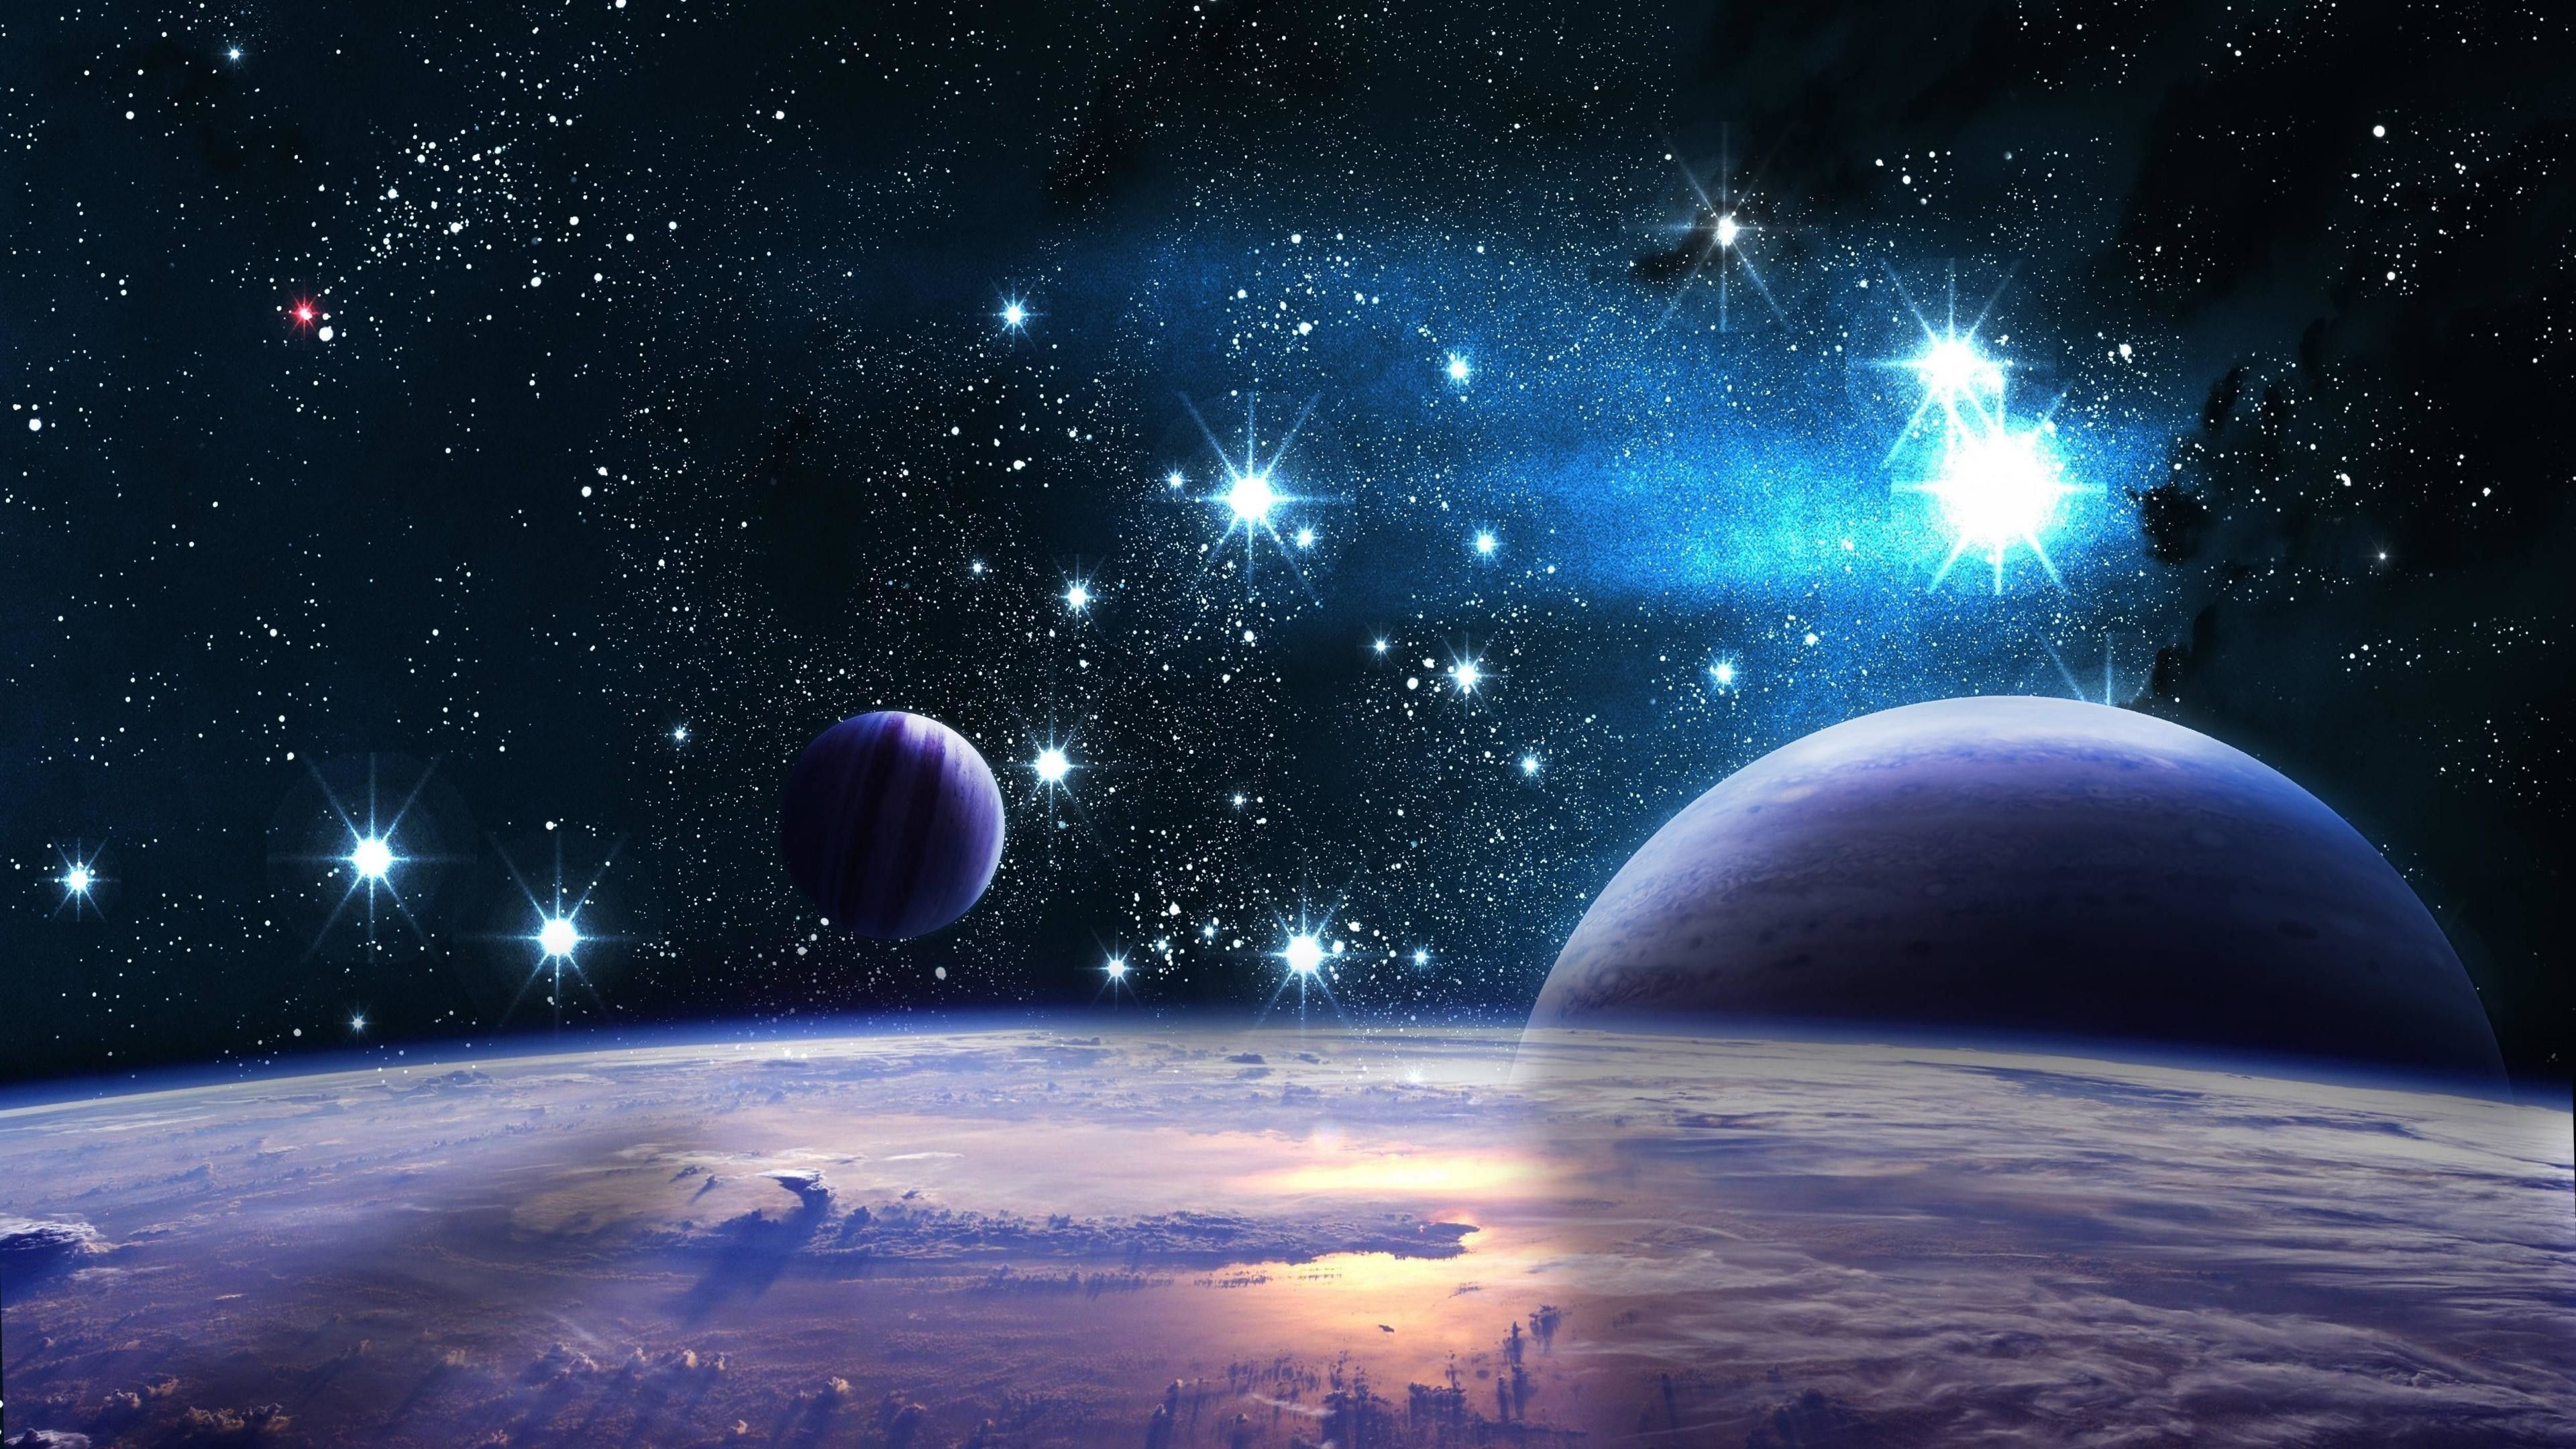 Universe Planets Wallpapers Top Free Universe Planets Backgrounds Wallpaperaccess